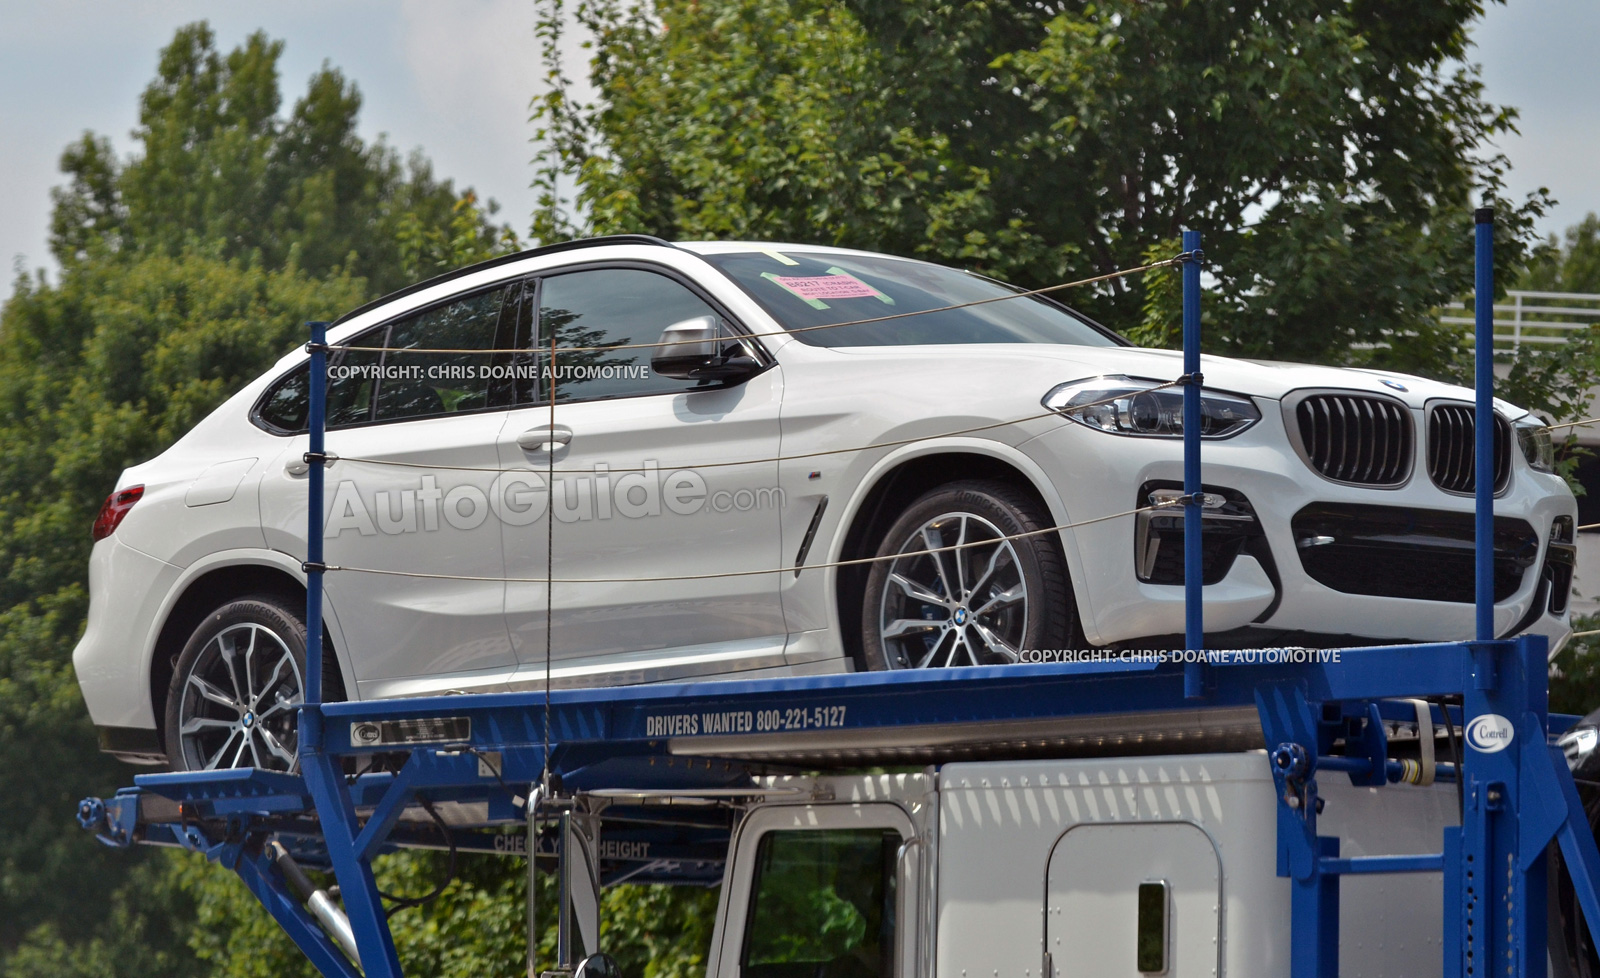 2019 BMW X4 Fully Revealed In Latest Spy Photos AutoGuide News